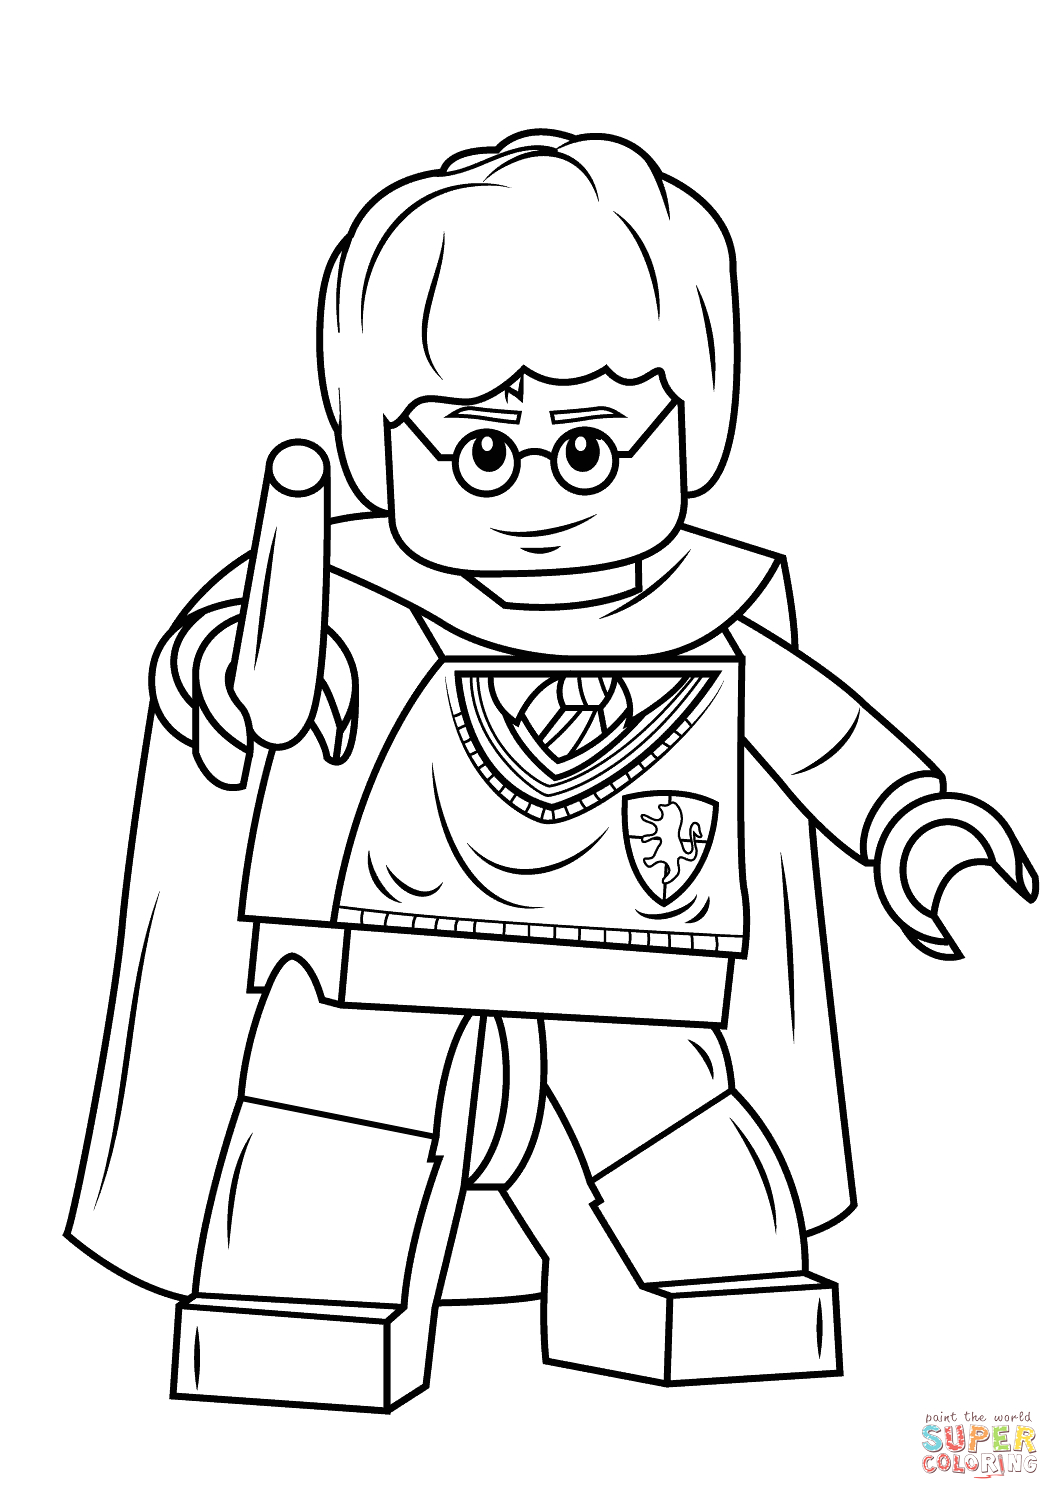 Lego Harry Potter Coloring Pages to Print Lego Harry Potter with Wand Coloring Page